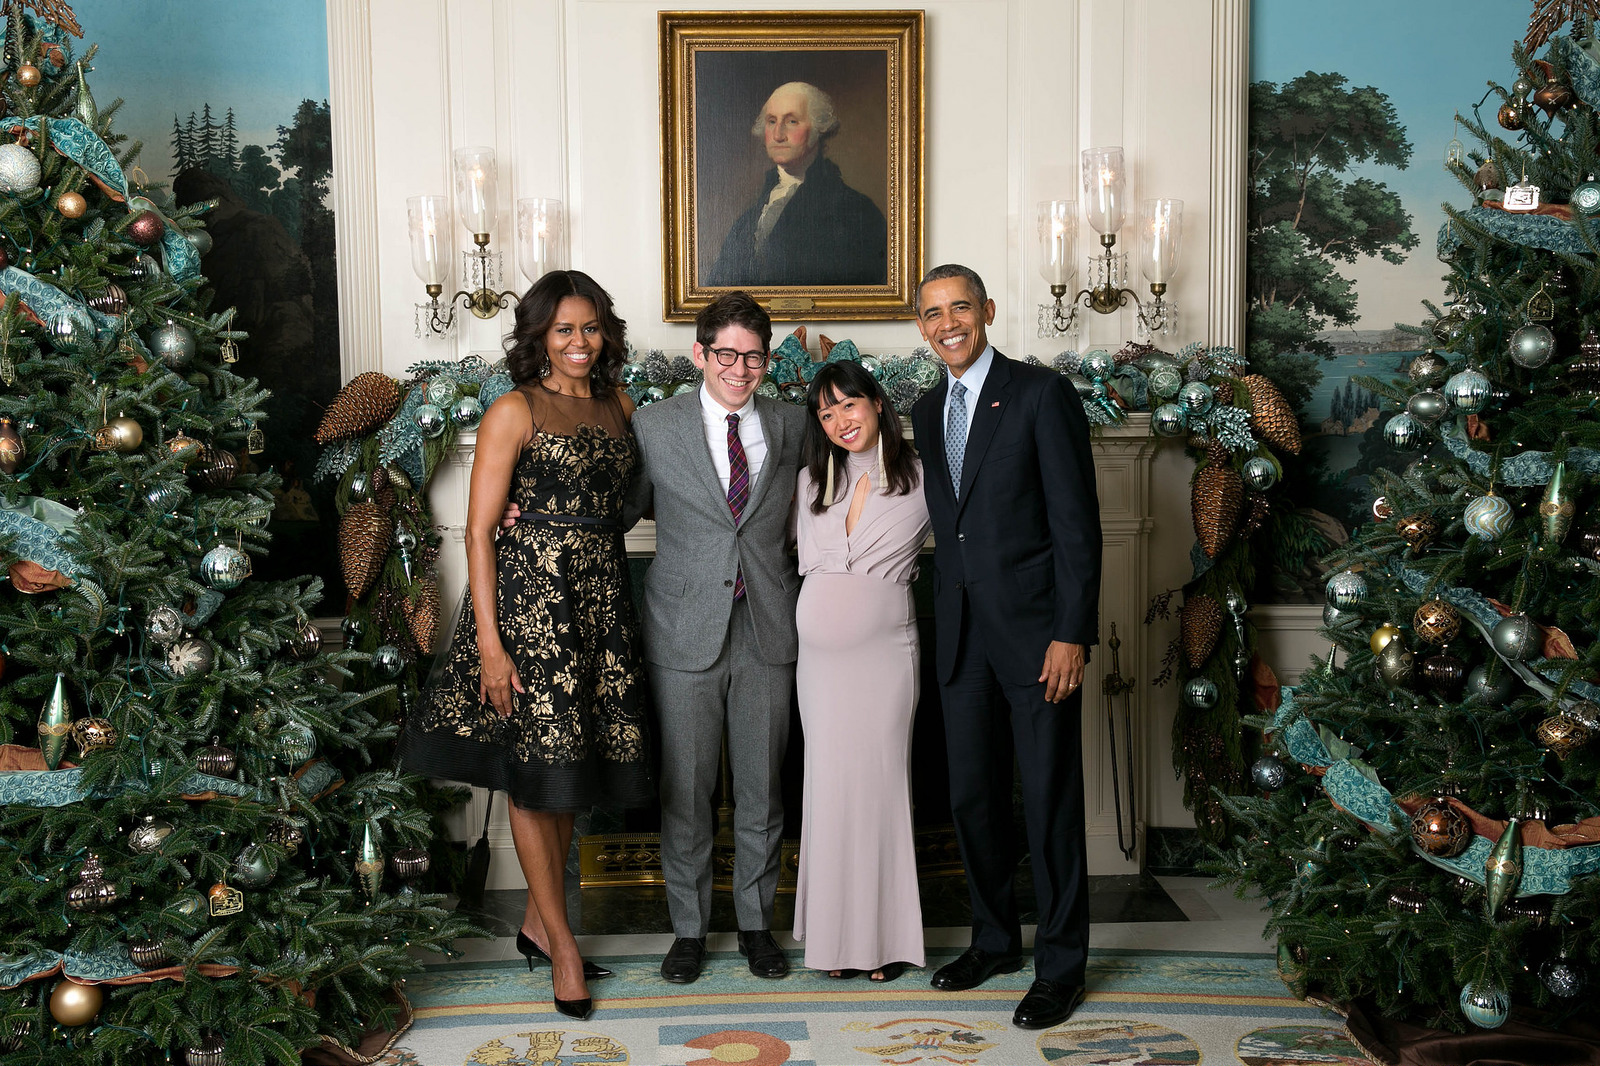 My (very pregnant) wife Jamie and I with the Obamas